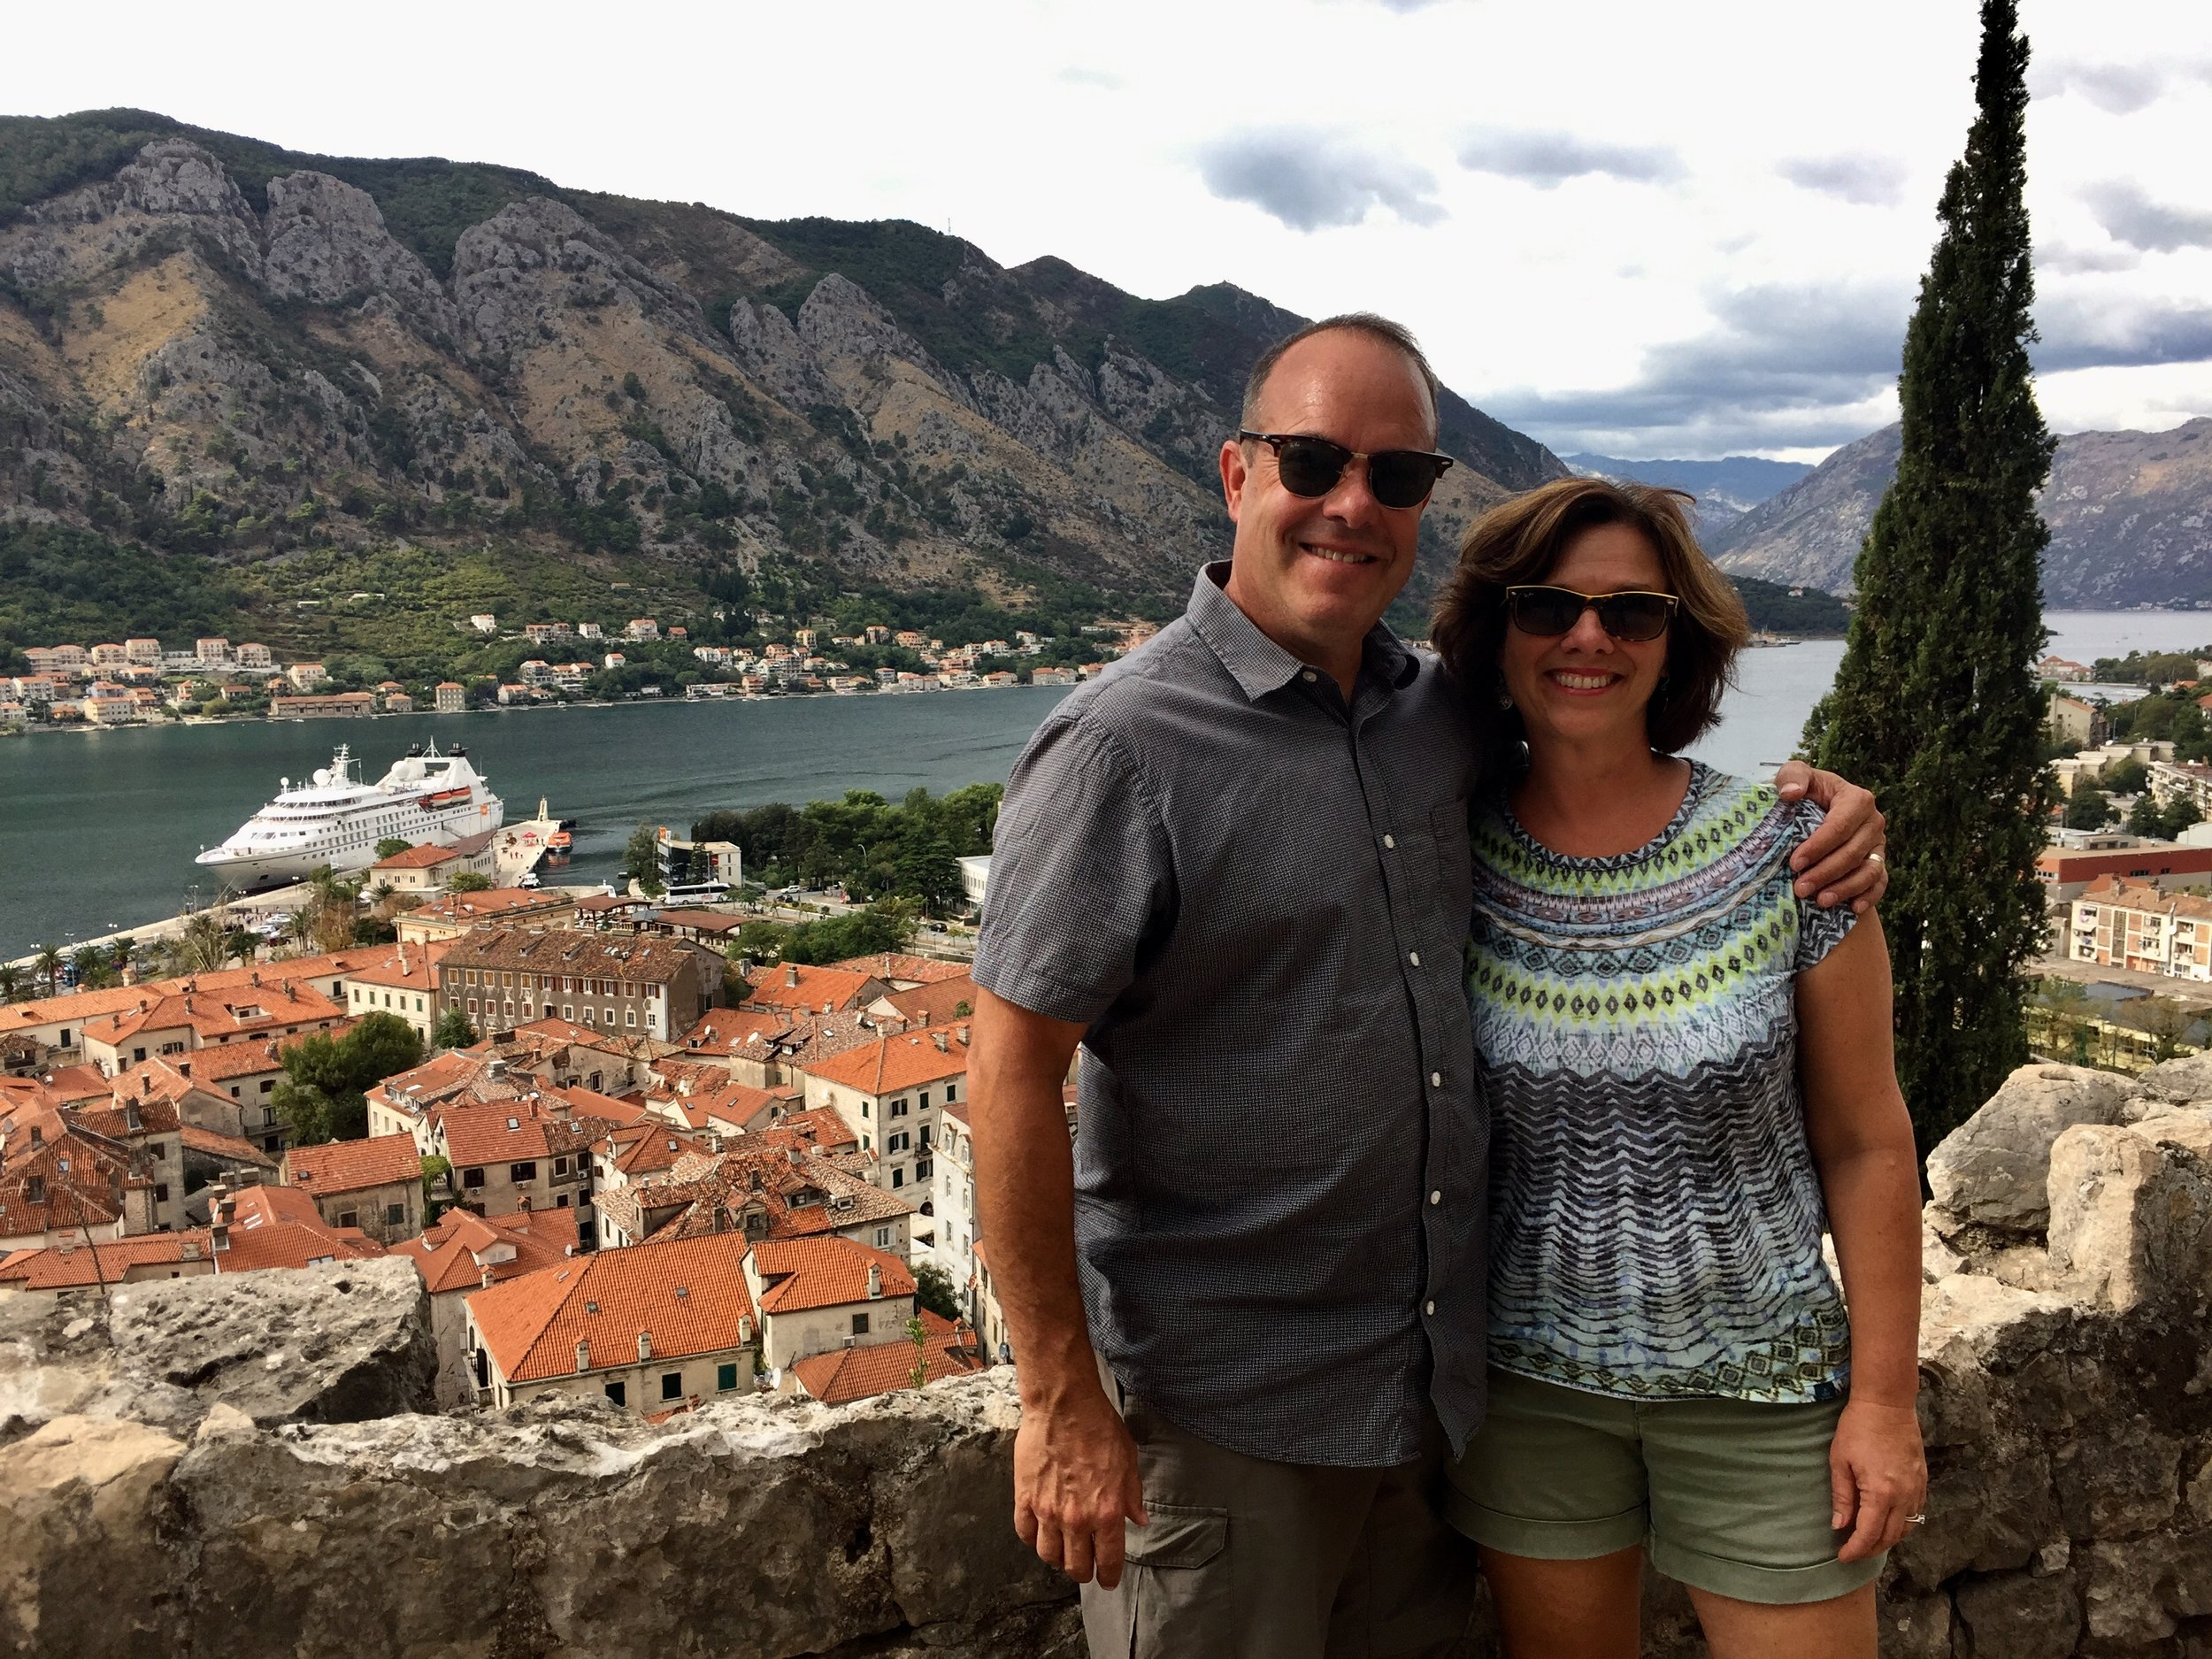 From the top of Kotor, Montenegro looking down with our ship in the background